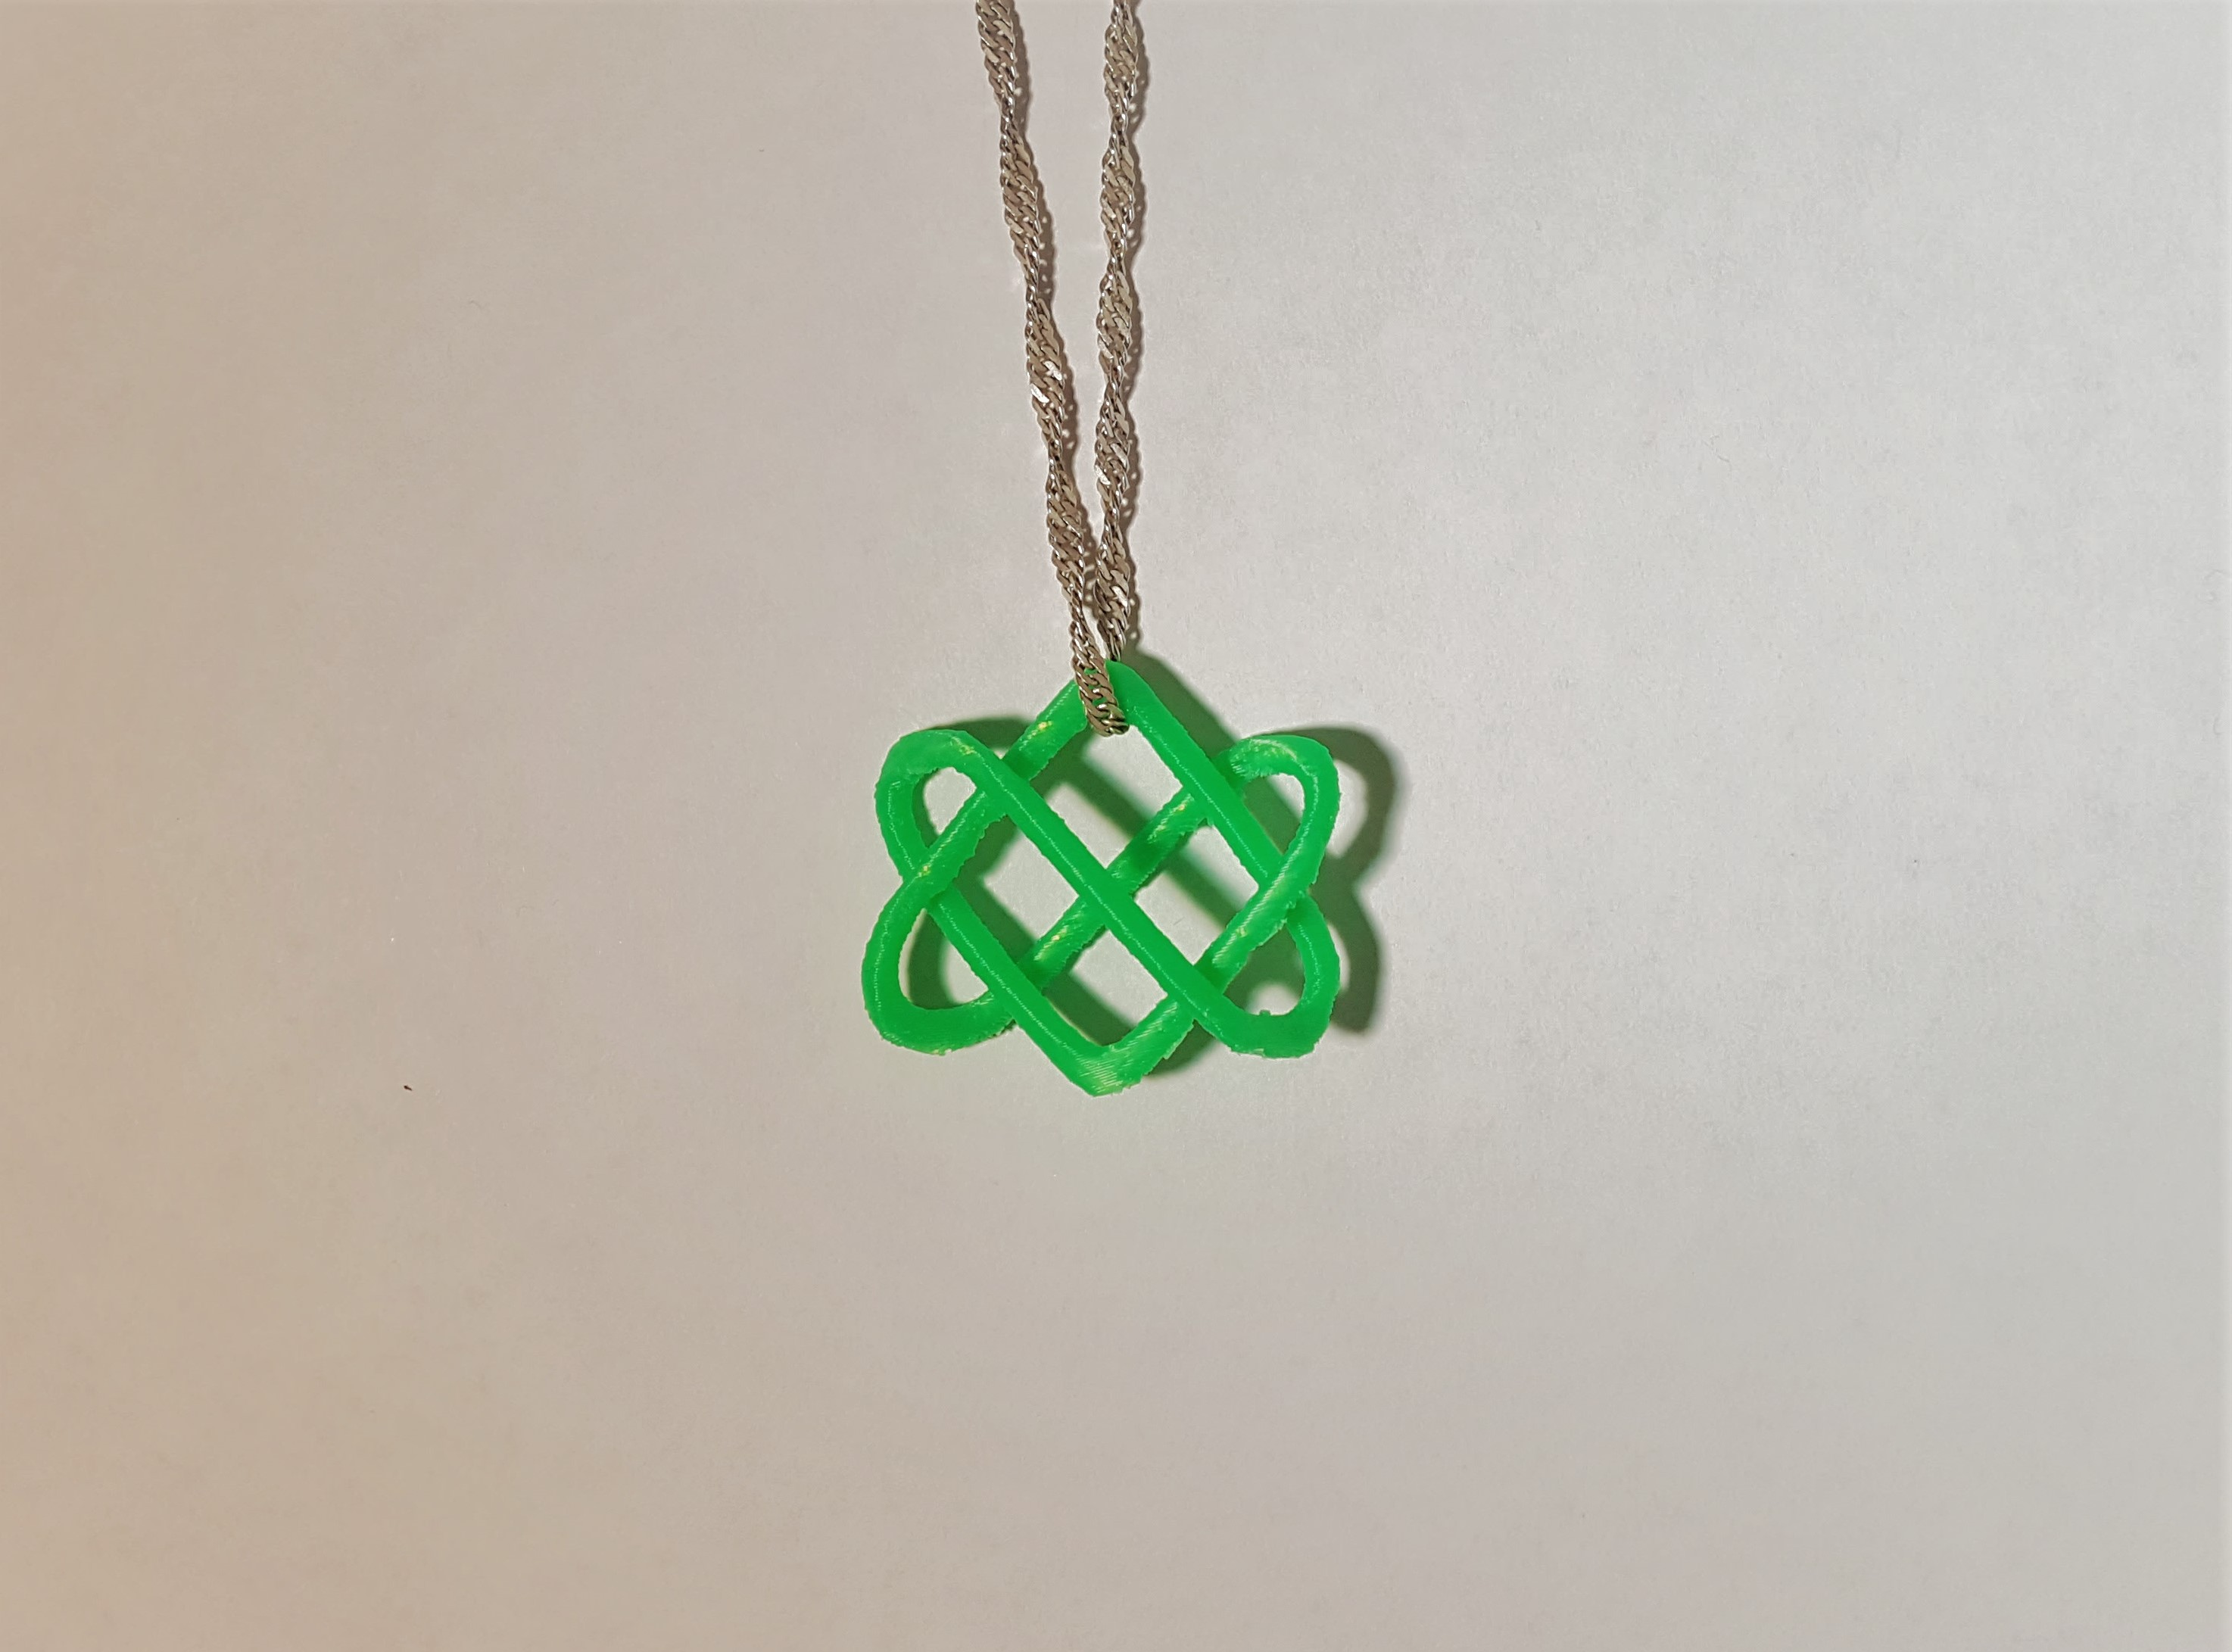 Celtic Love Knot - 3D design by Dan O'Connell Sep 13, 2017